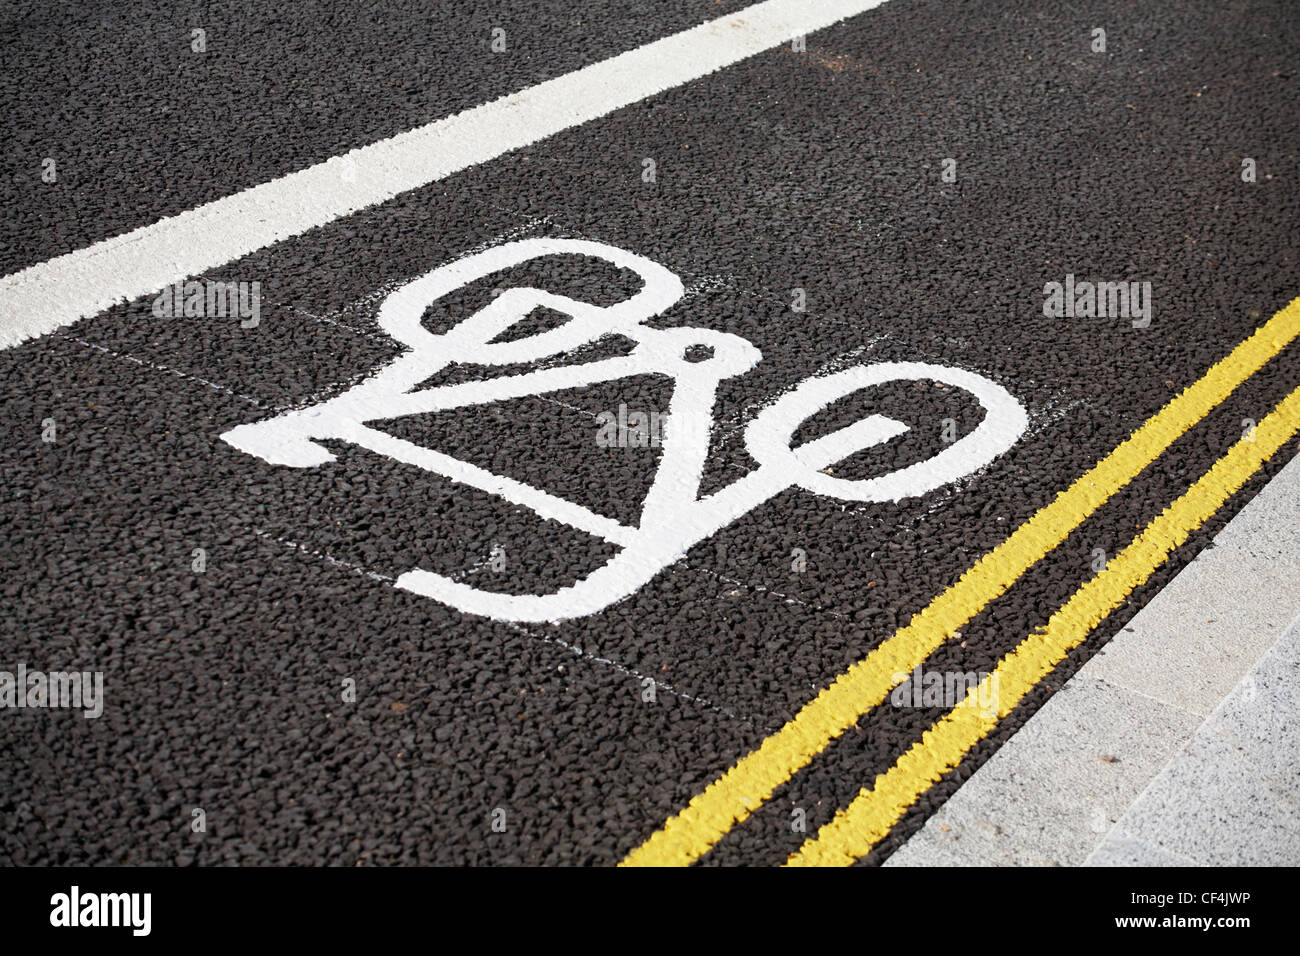 markings for cycle lane and double yellow lines on tarmaced road - Stock Image